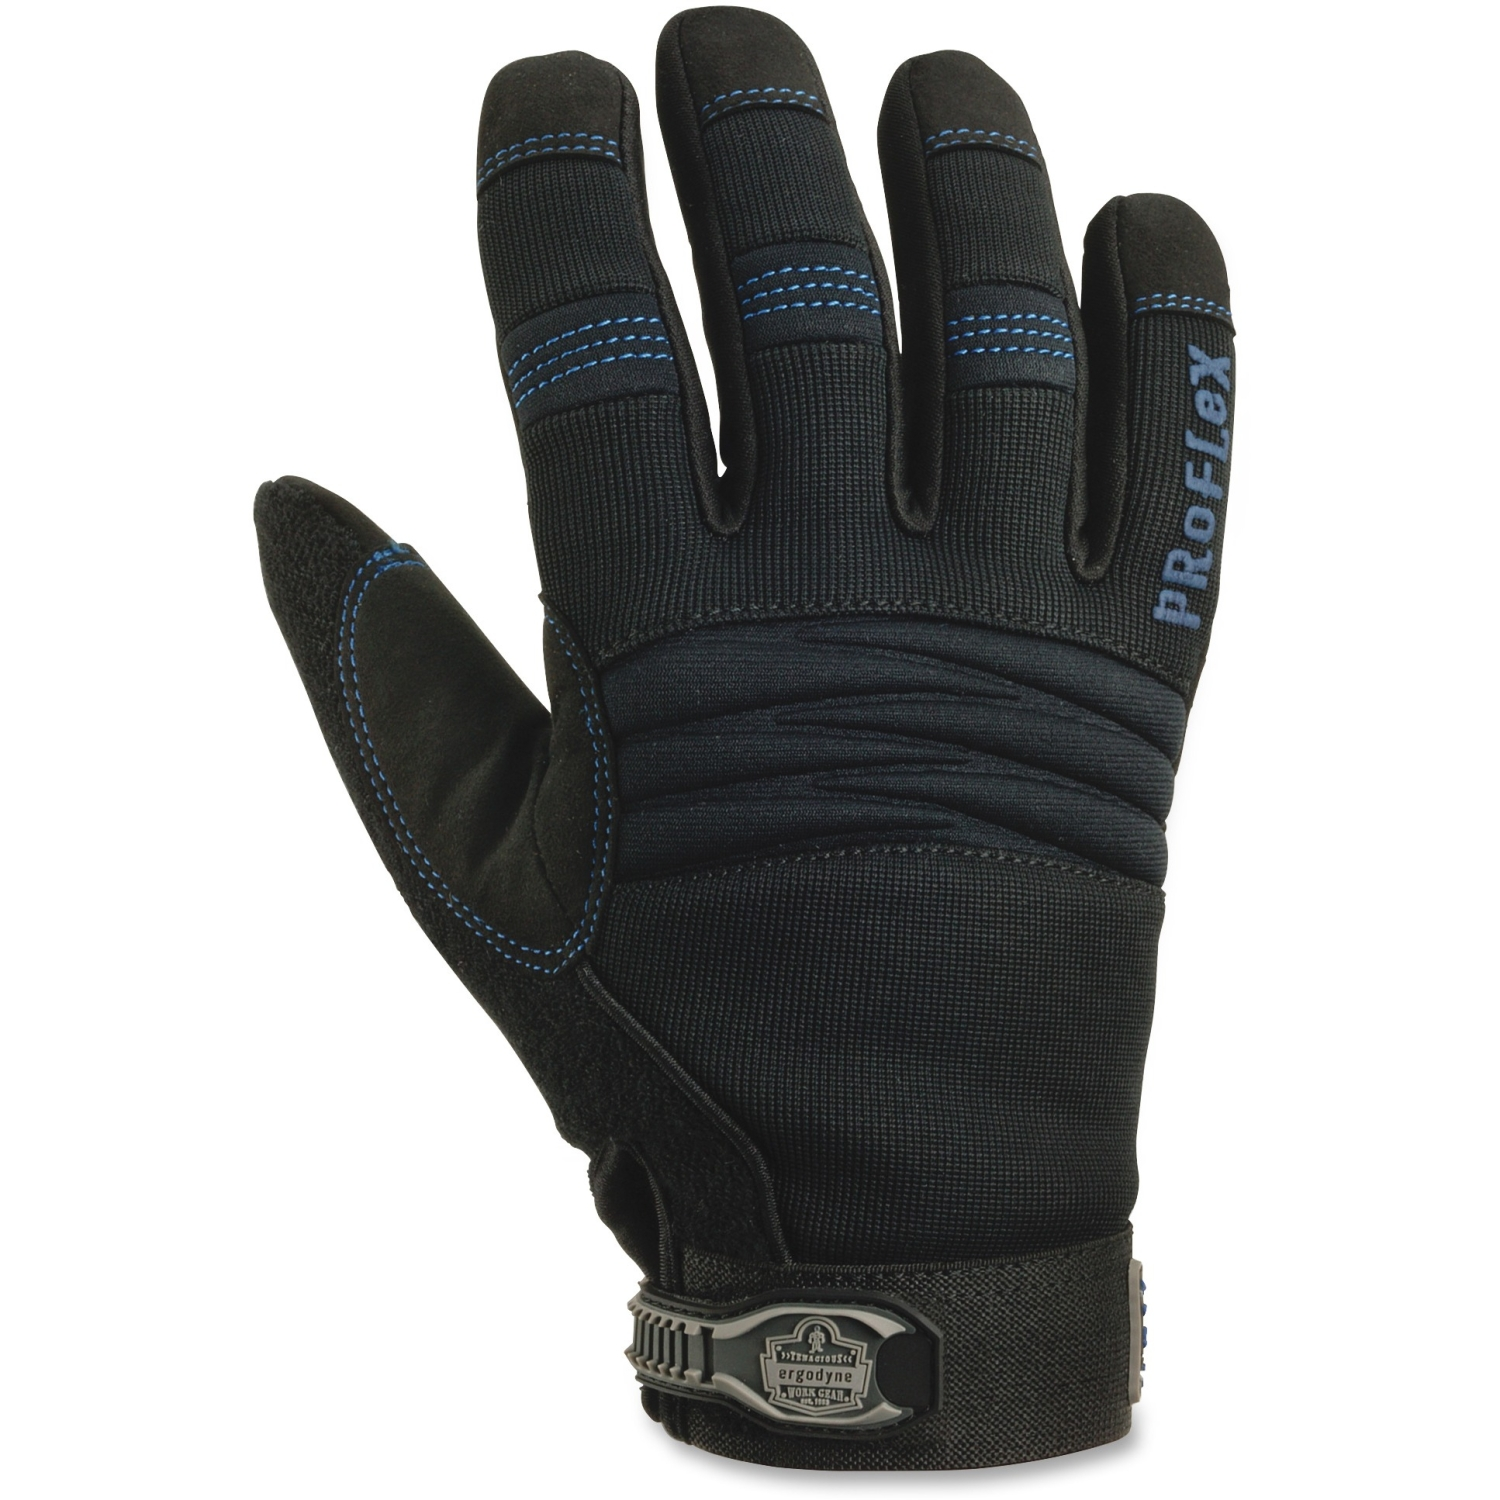 ProFlex 817 Thermal Utility Gloves, Black by Ergodyne